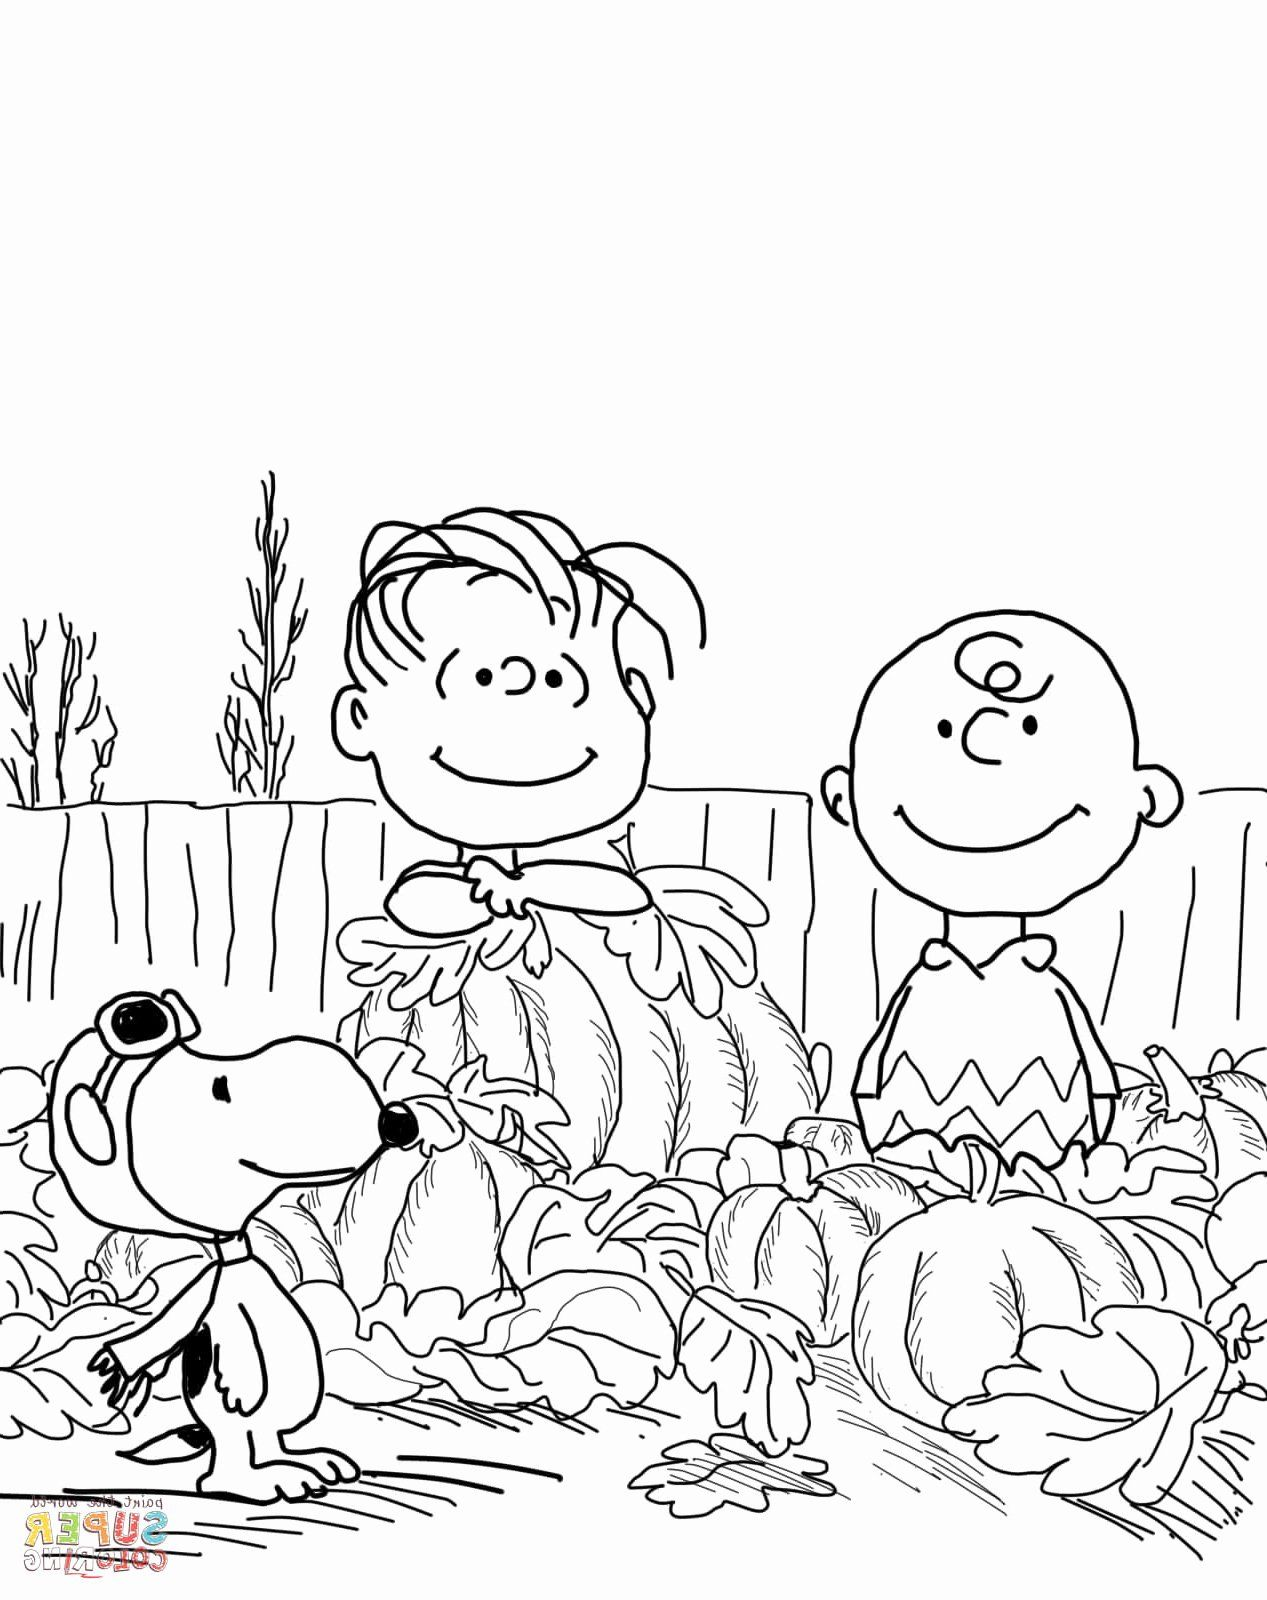 8 Pics Of Charlie Brown Valentine Coloring Pages - Charlie Brown ... | 1600x1267